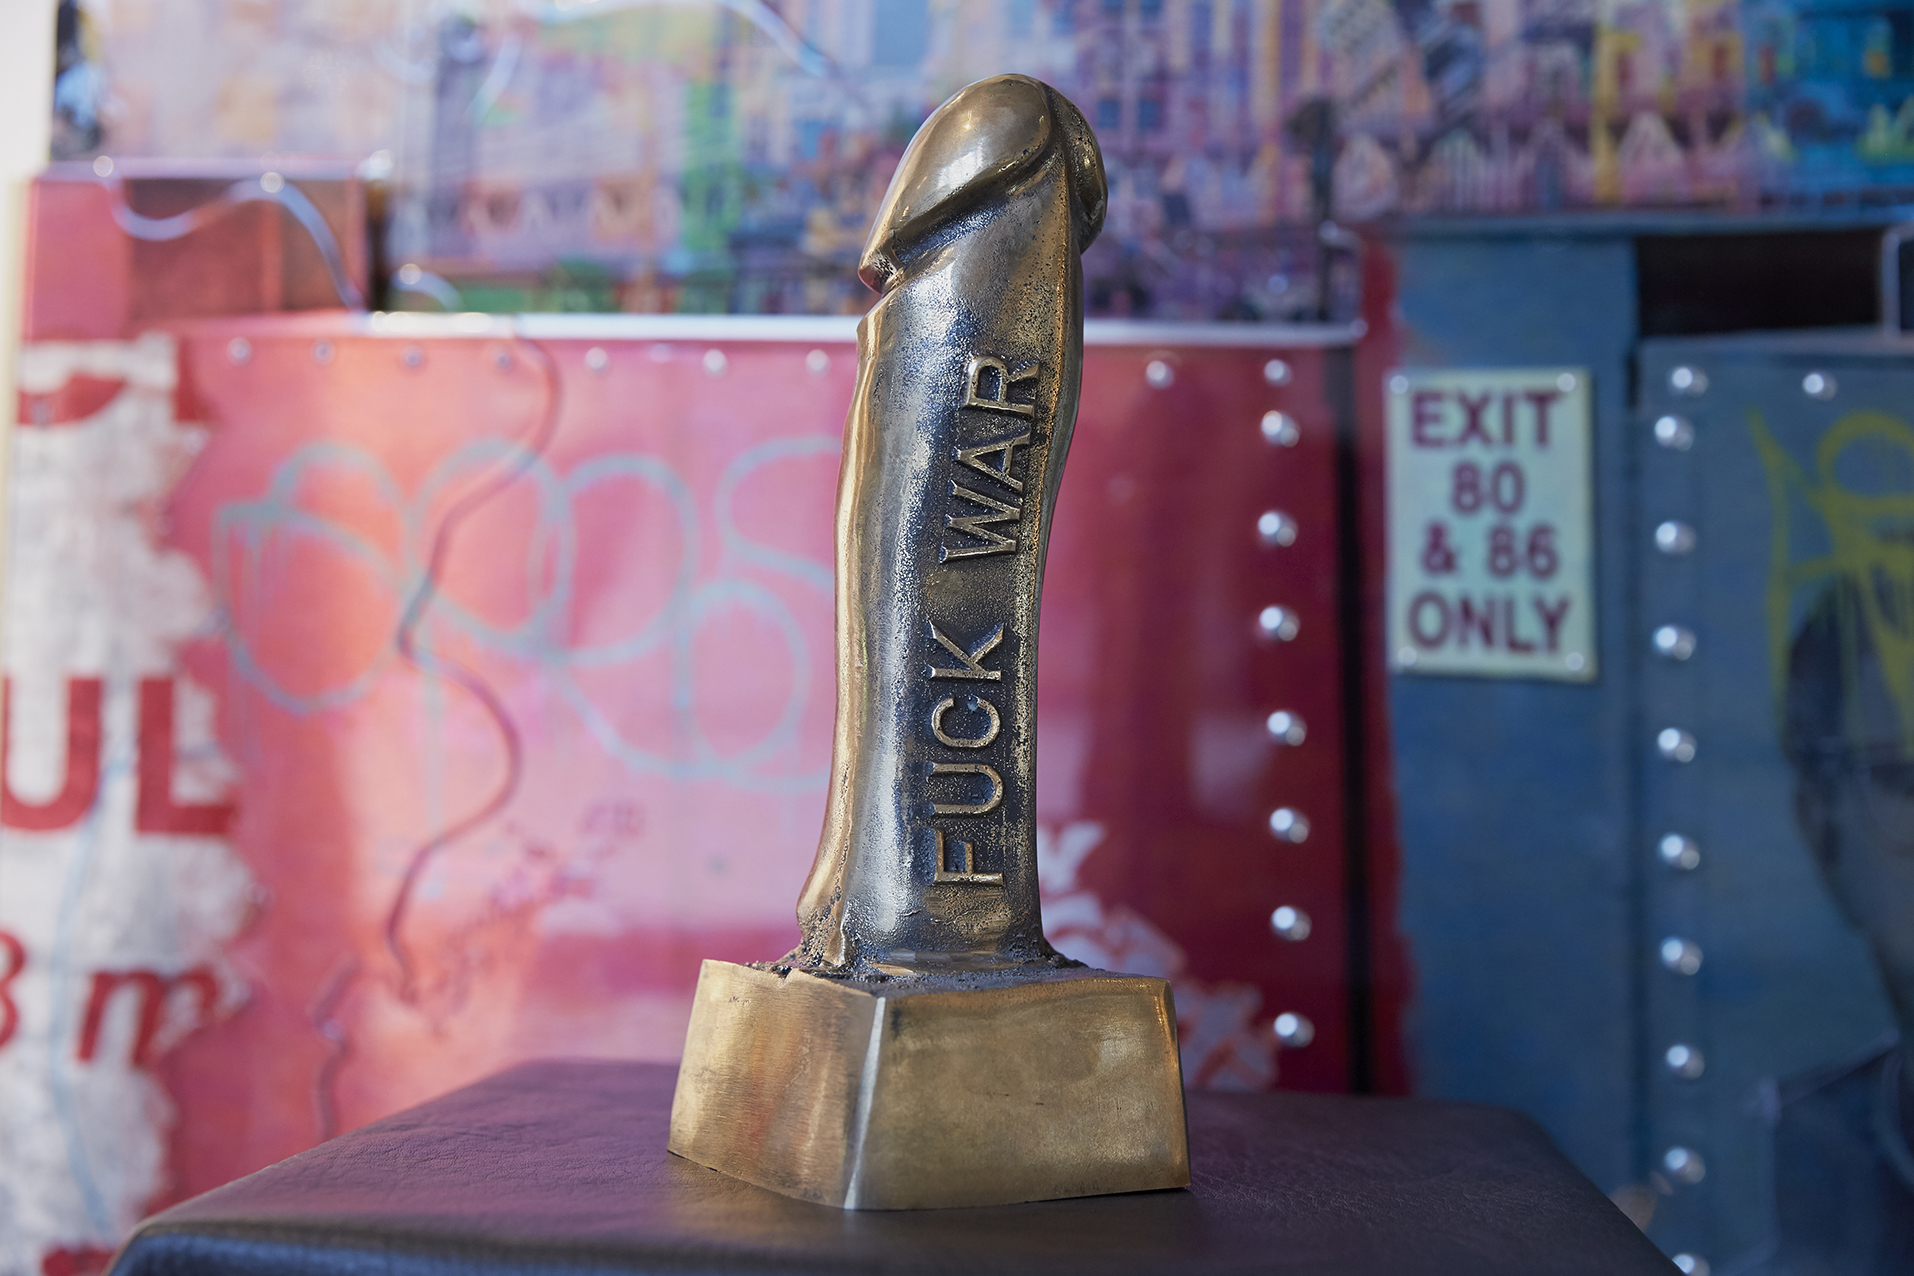 Fvck War! A 10 Inch Penis Statue Made of Molten Weapons